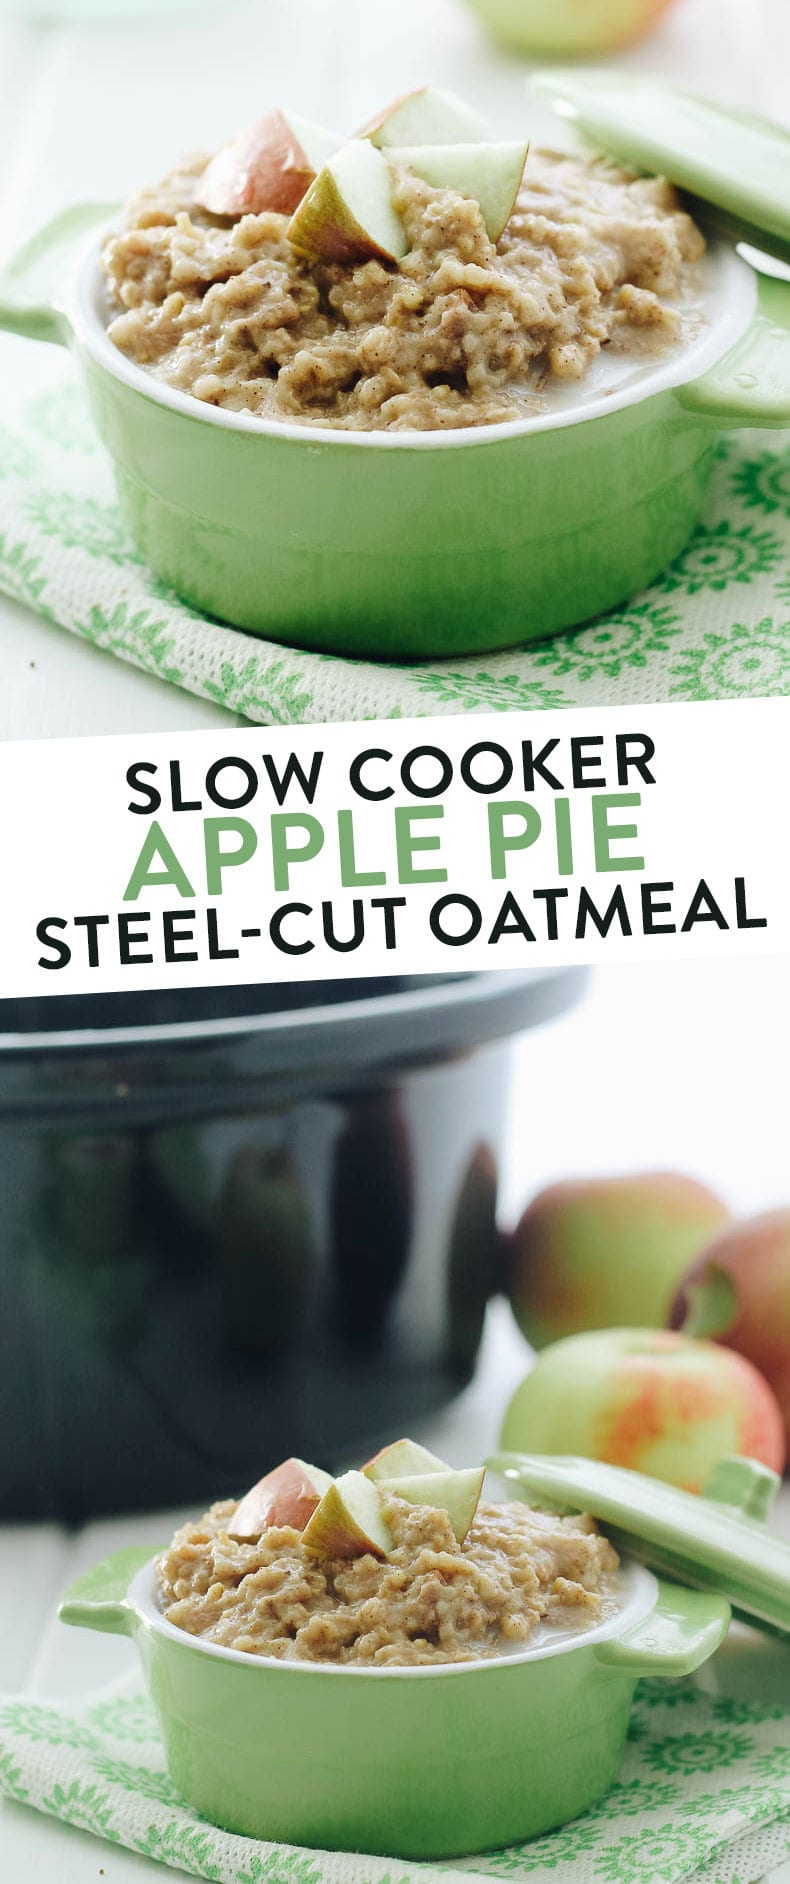 This Slow Cooker Apple Pie Steel-Cut Oatmeal makes the perfect, hands-off healthy breakfast for Fall. Just throw in the Slow Cooker and you have breakfast ready for you when you wake up. #oatmeal #slowcooker #steelcut